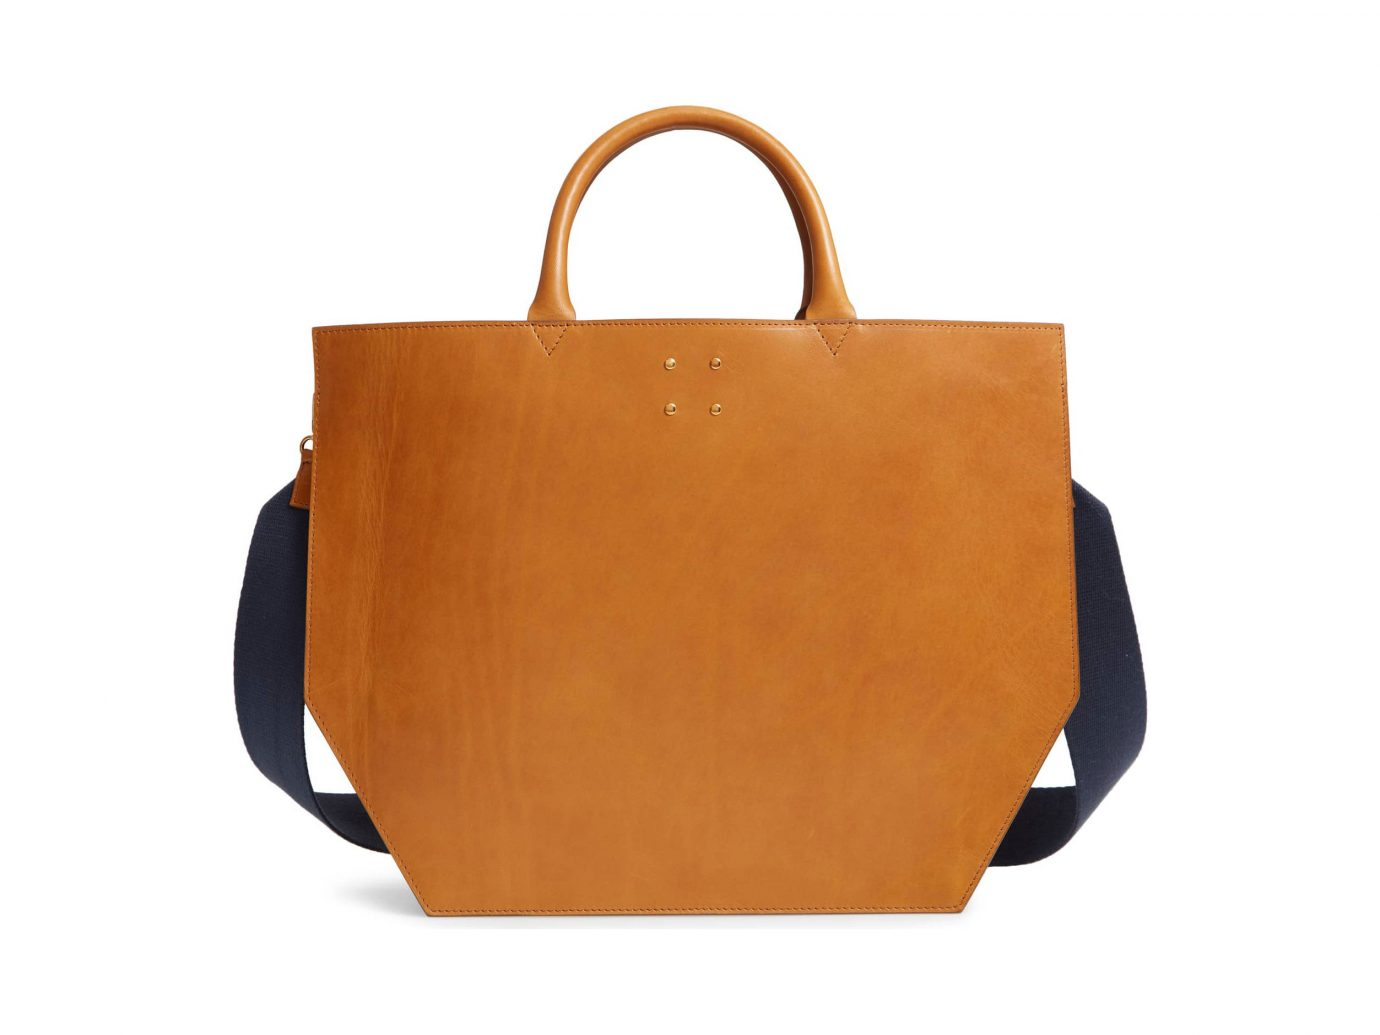 TRADEMARK Collapsing Leather Tote